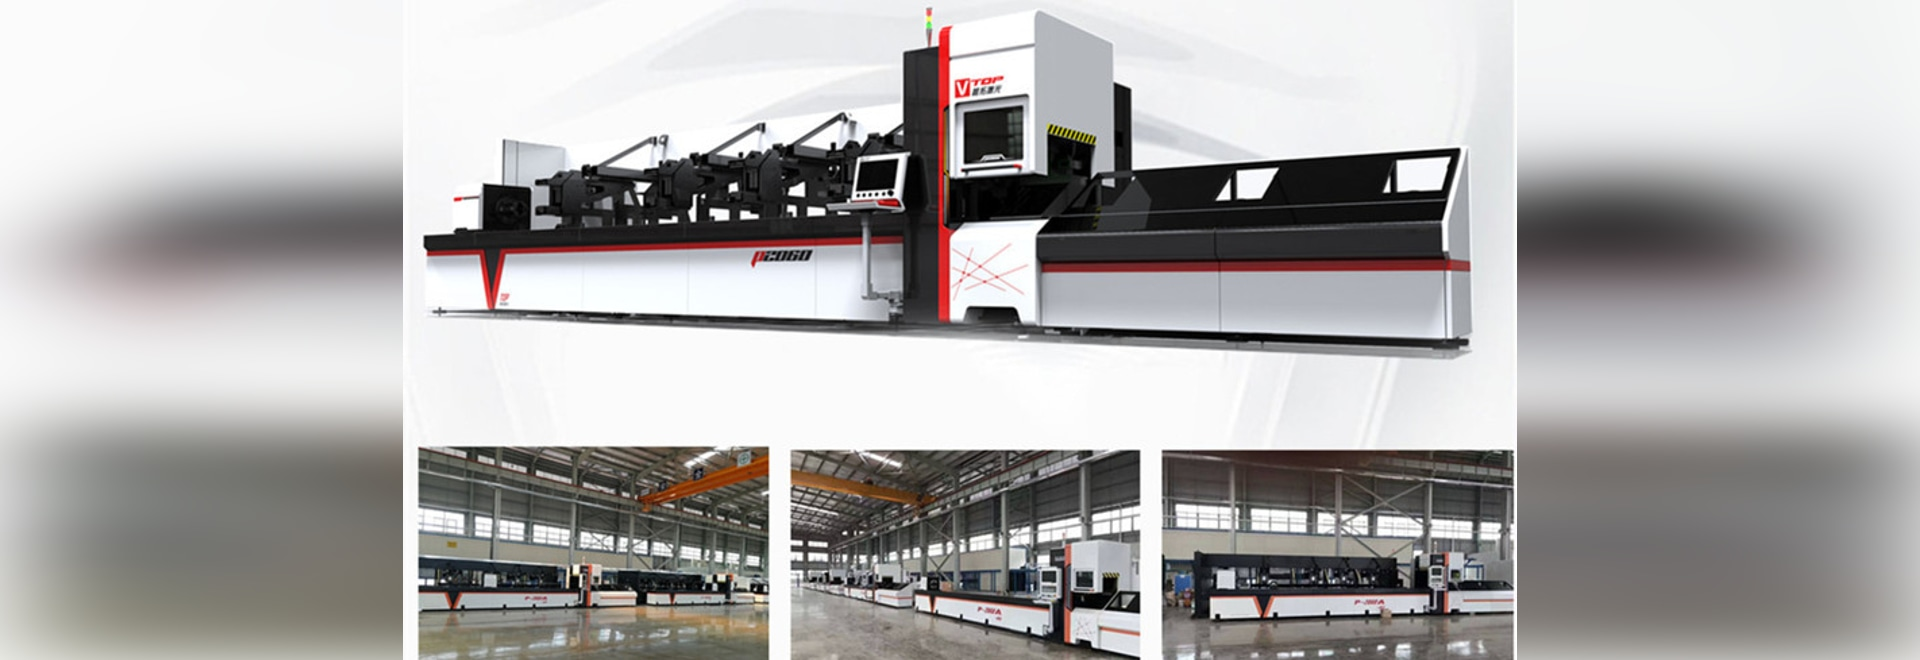 700w 1000w 2000w 3000w Cnc Fiber Laser Pipe Cutting Machine For Round Tube / Square Tube / Rectangular Tube